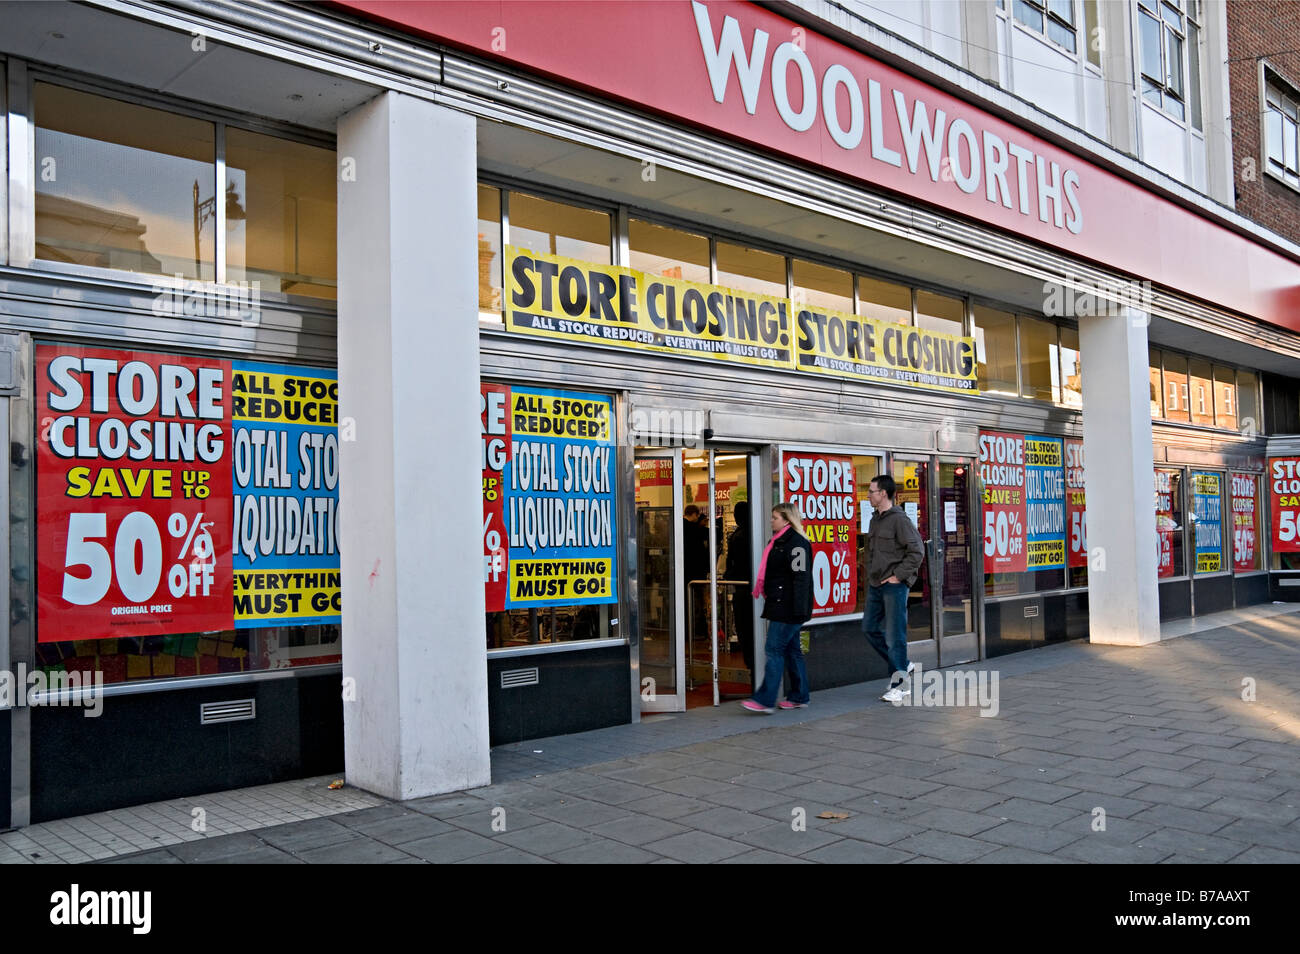 Woolworths store closing down sale London UK Stock Photo ...